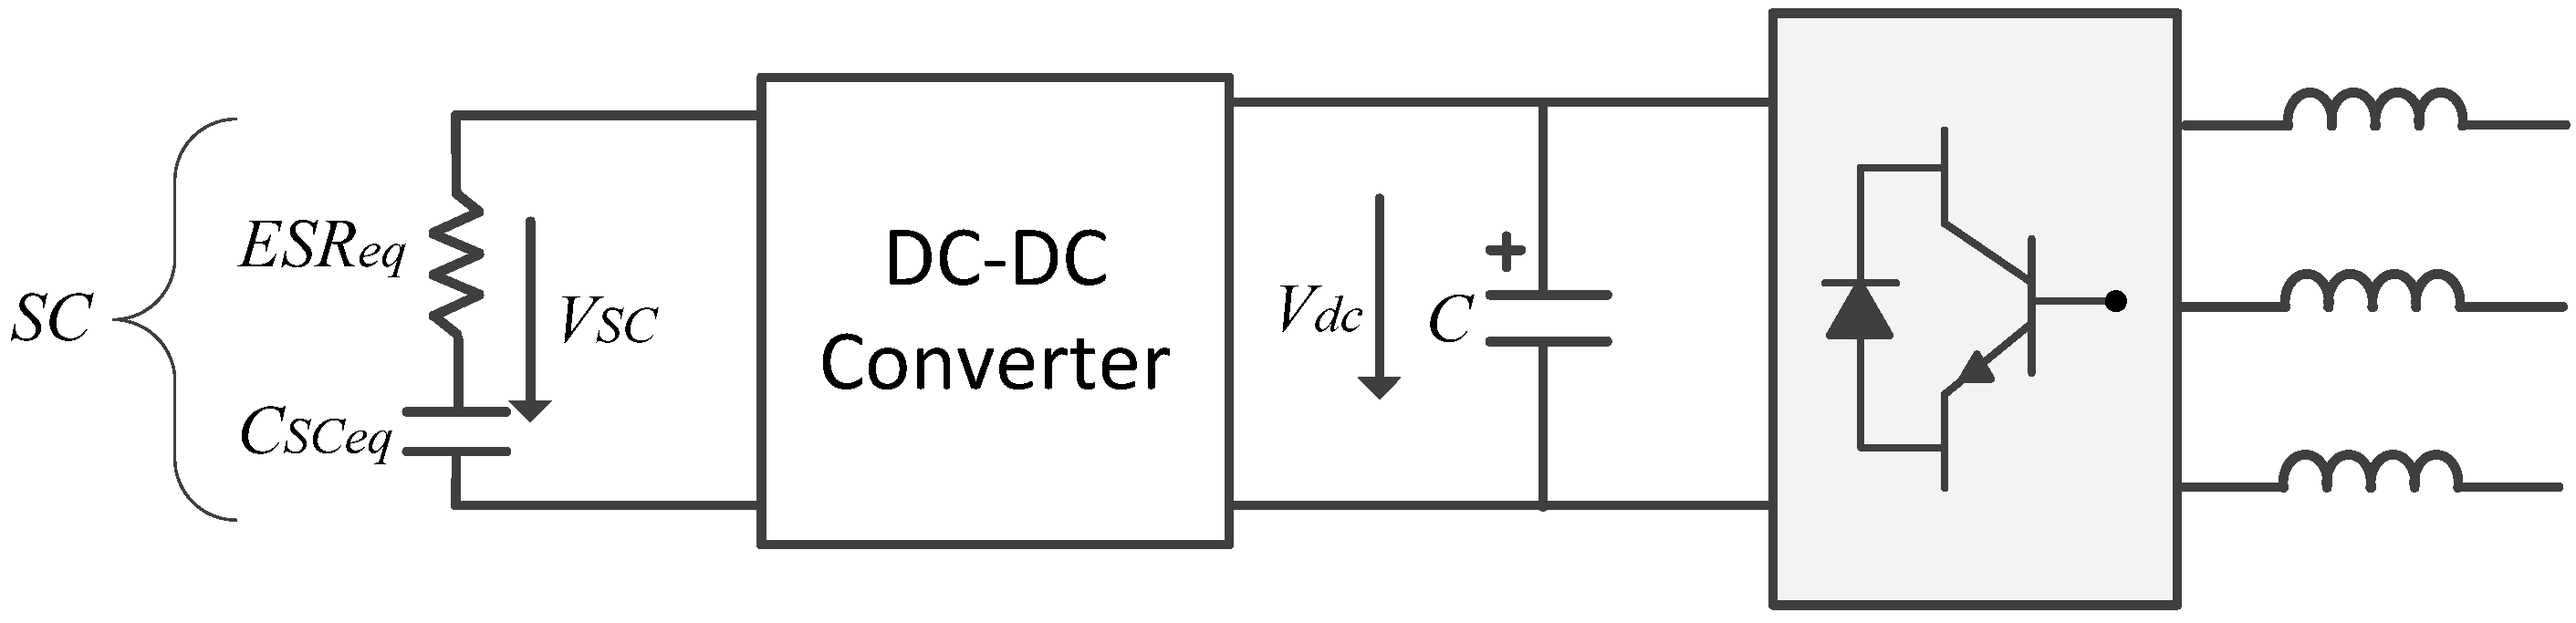 Energies Free Full Text A Statcom With Supercapacitors For Low Circuit Symbol Moreover Capacitor Bank Diagram On 07 05922 G012 1024